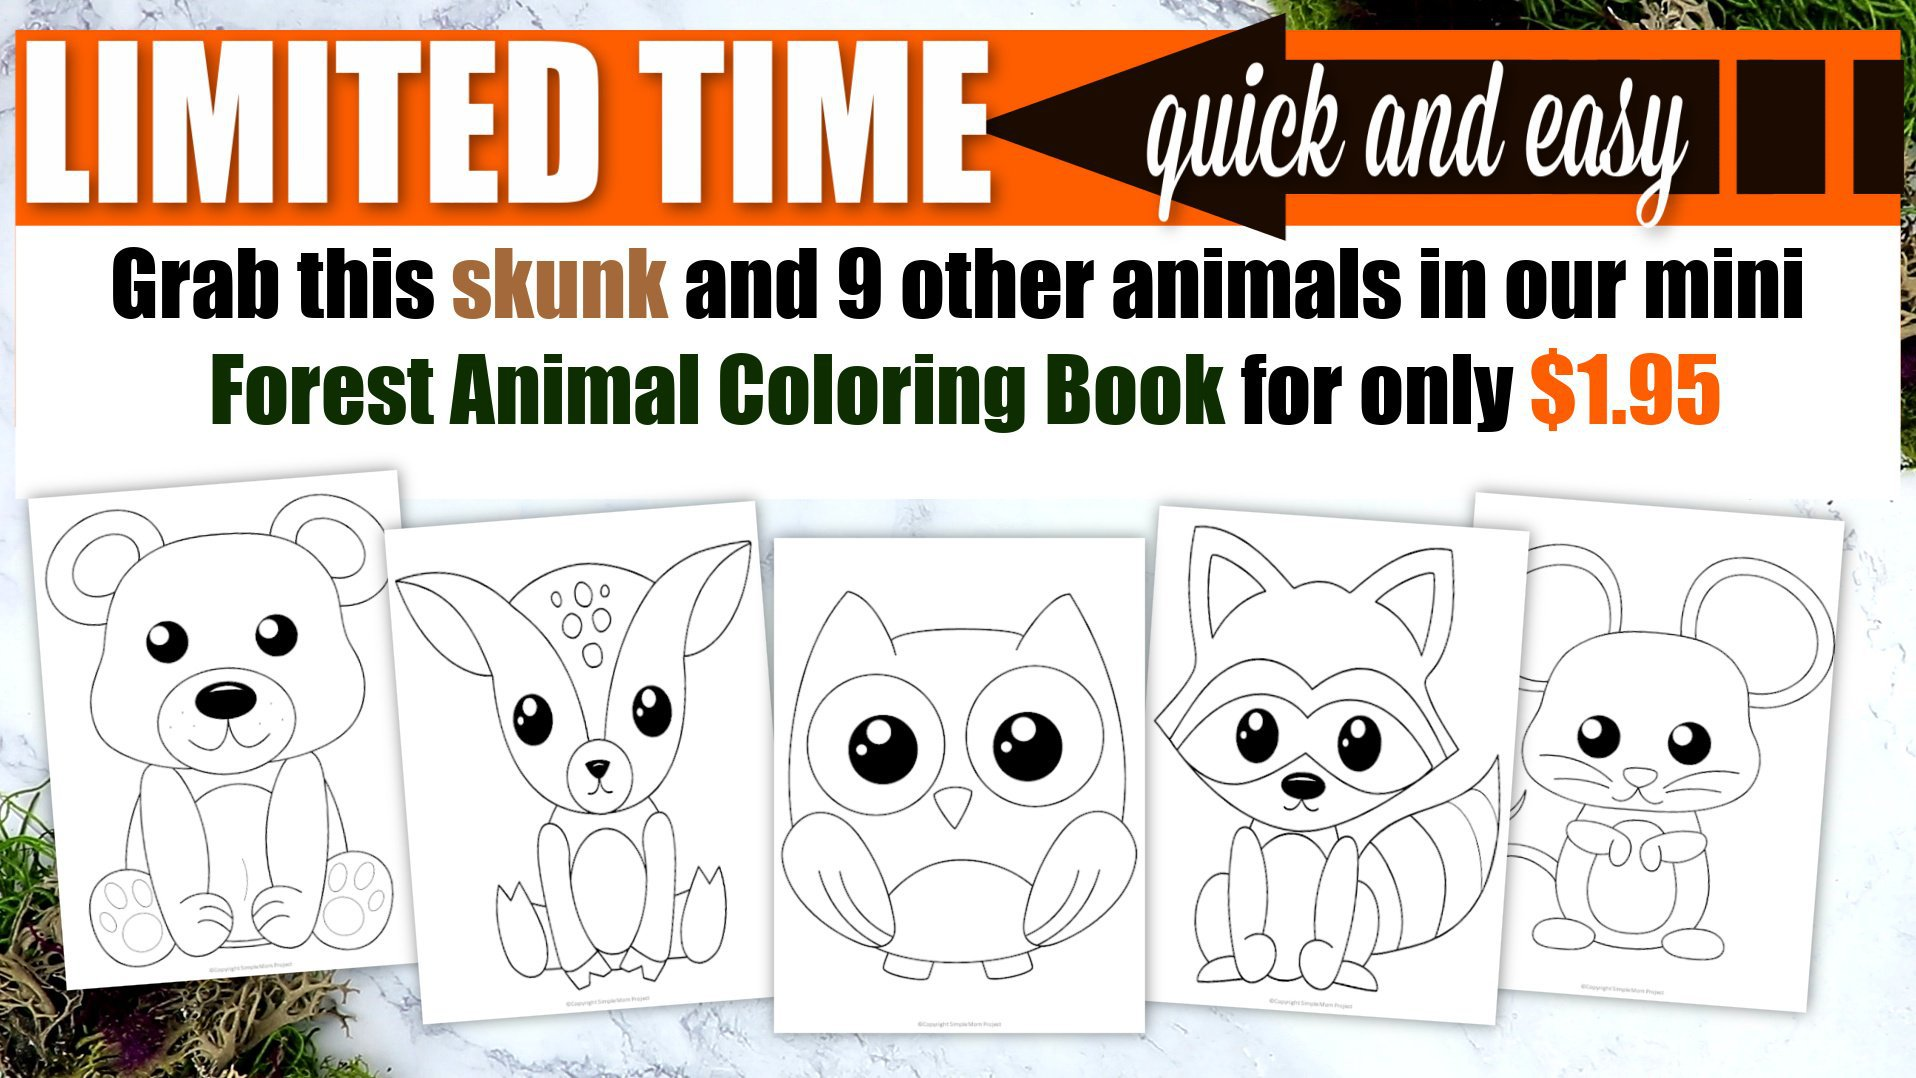 Printable Woodland Forest skunk Coloring Page for Kids Preschoolers Toddlers and kindergartners